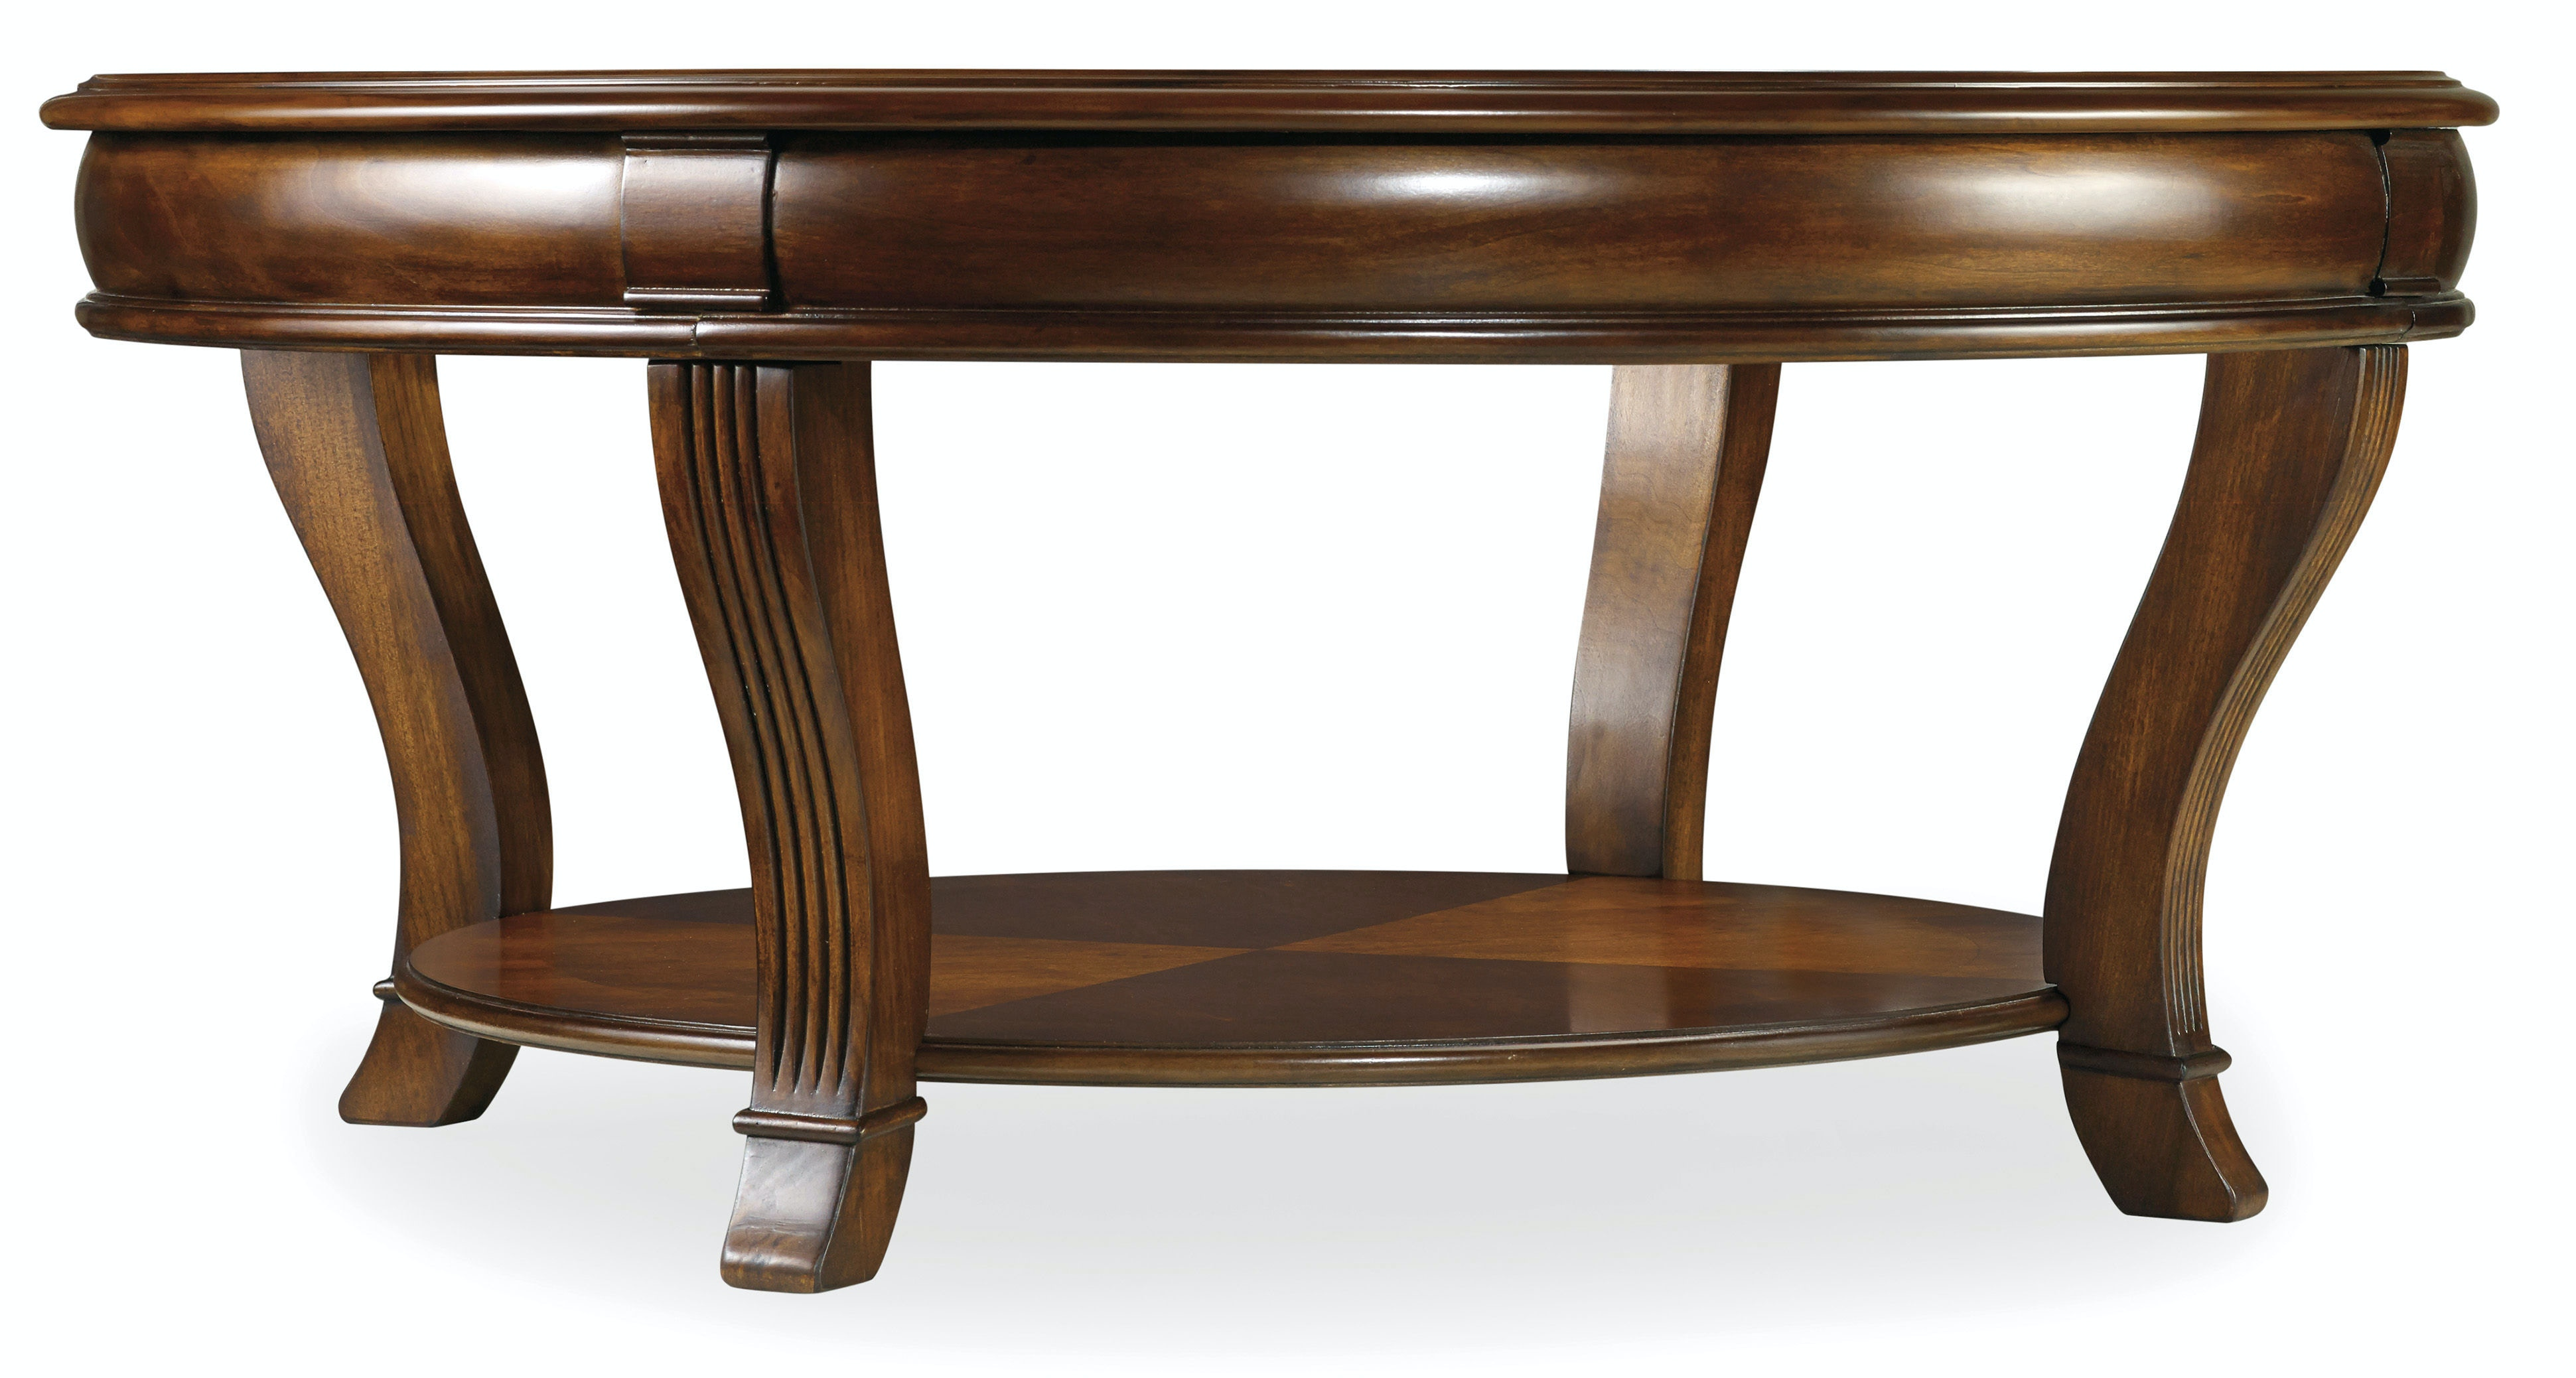 281 80 111. Brookhaven Round Cocktail Table